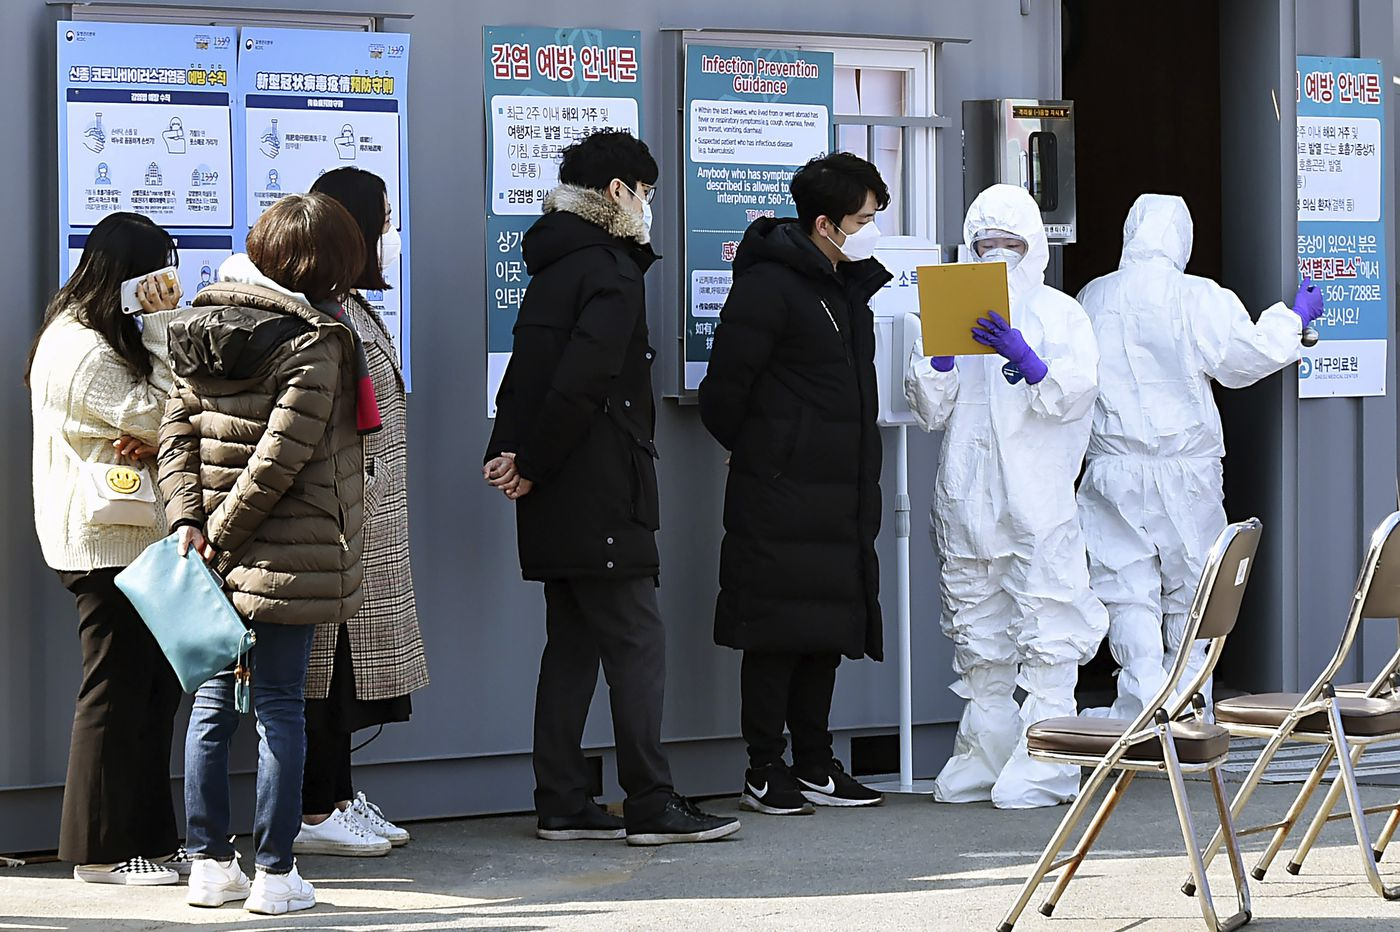 Trump should take a lesson from South Korea on coronavirus and get moving on testing now | Trudy Rubin